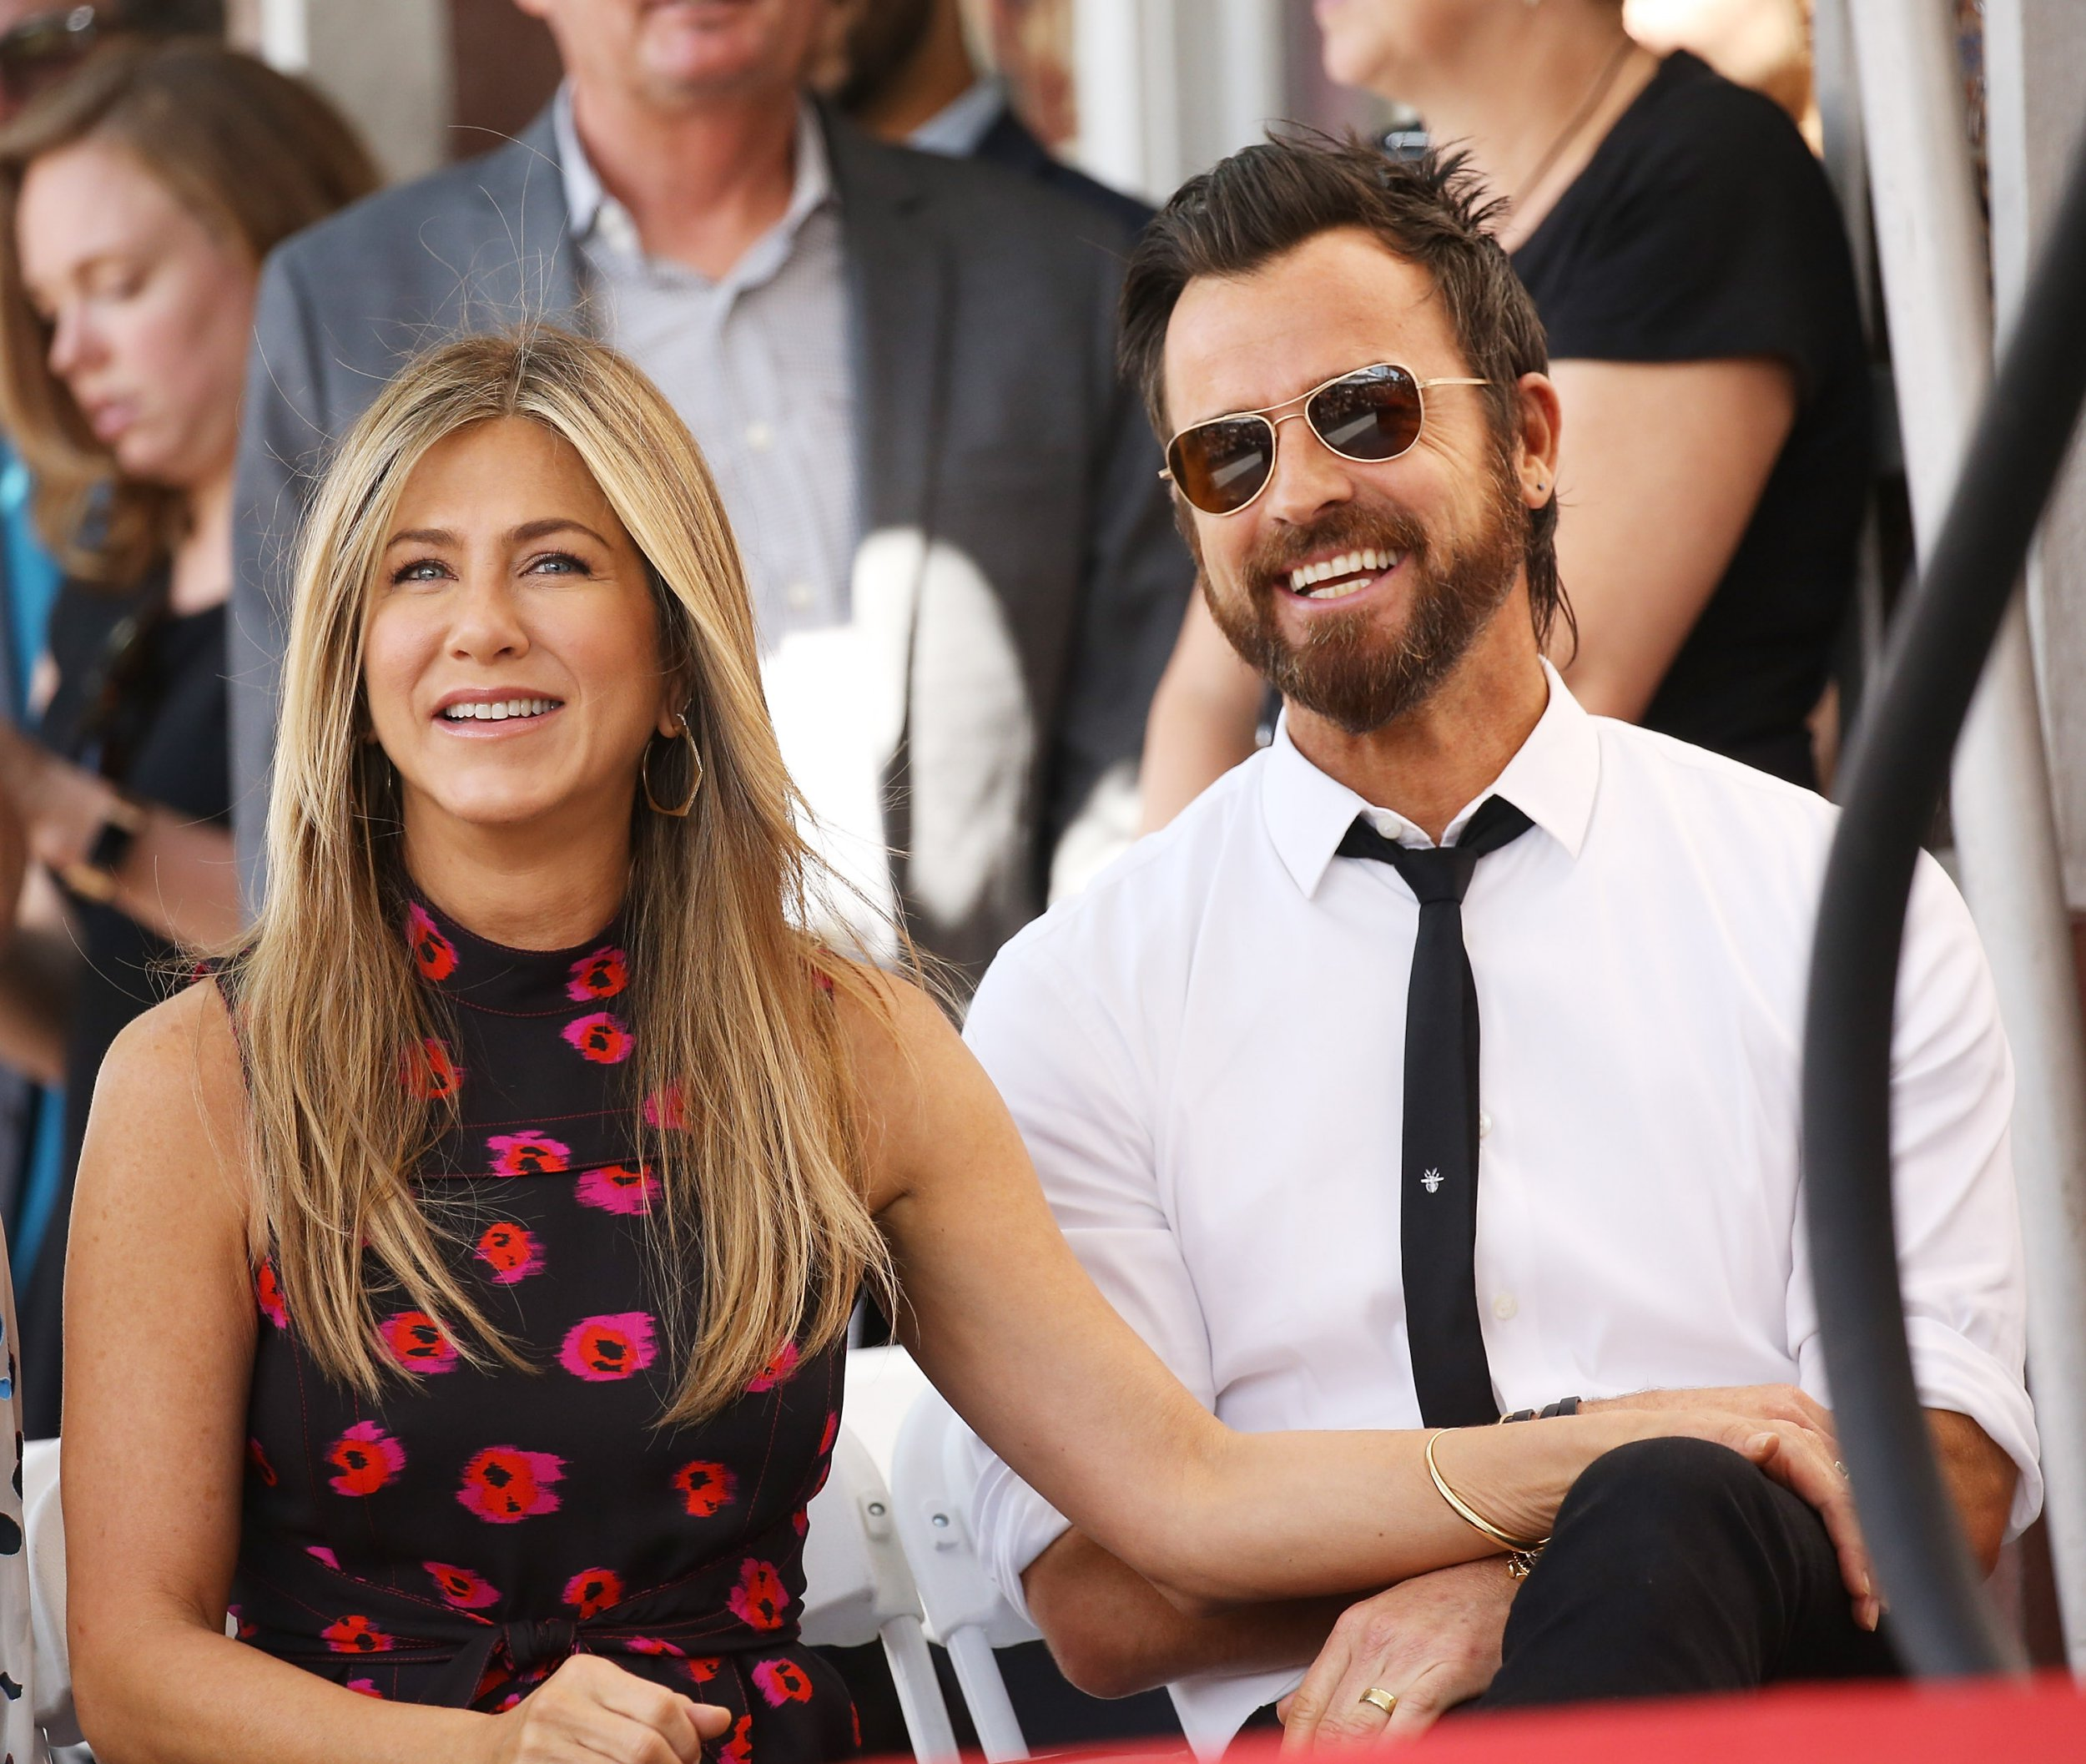 Jennifer Aniston and Justin Theroux 'signed iron-clad prenup to protect Friends fortune'